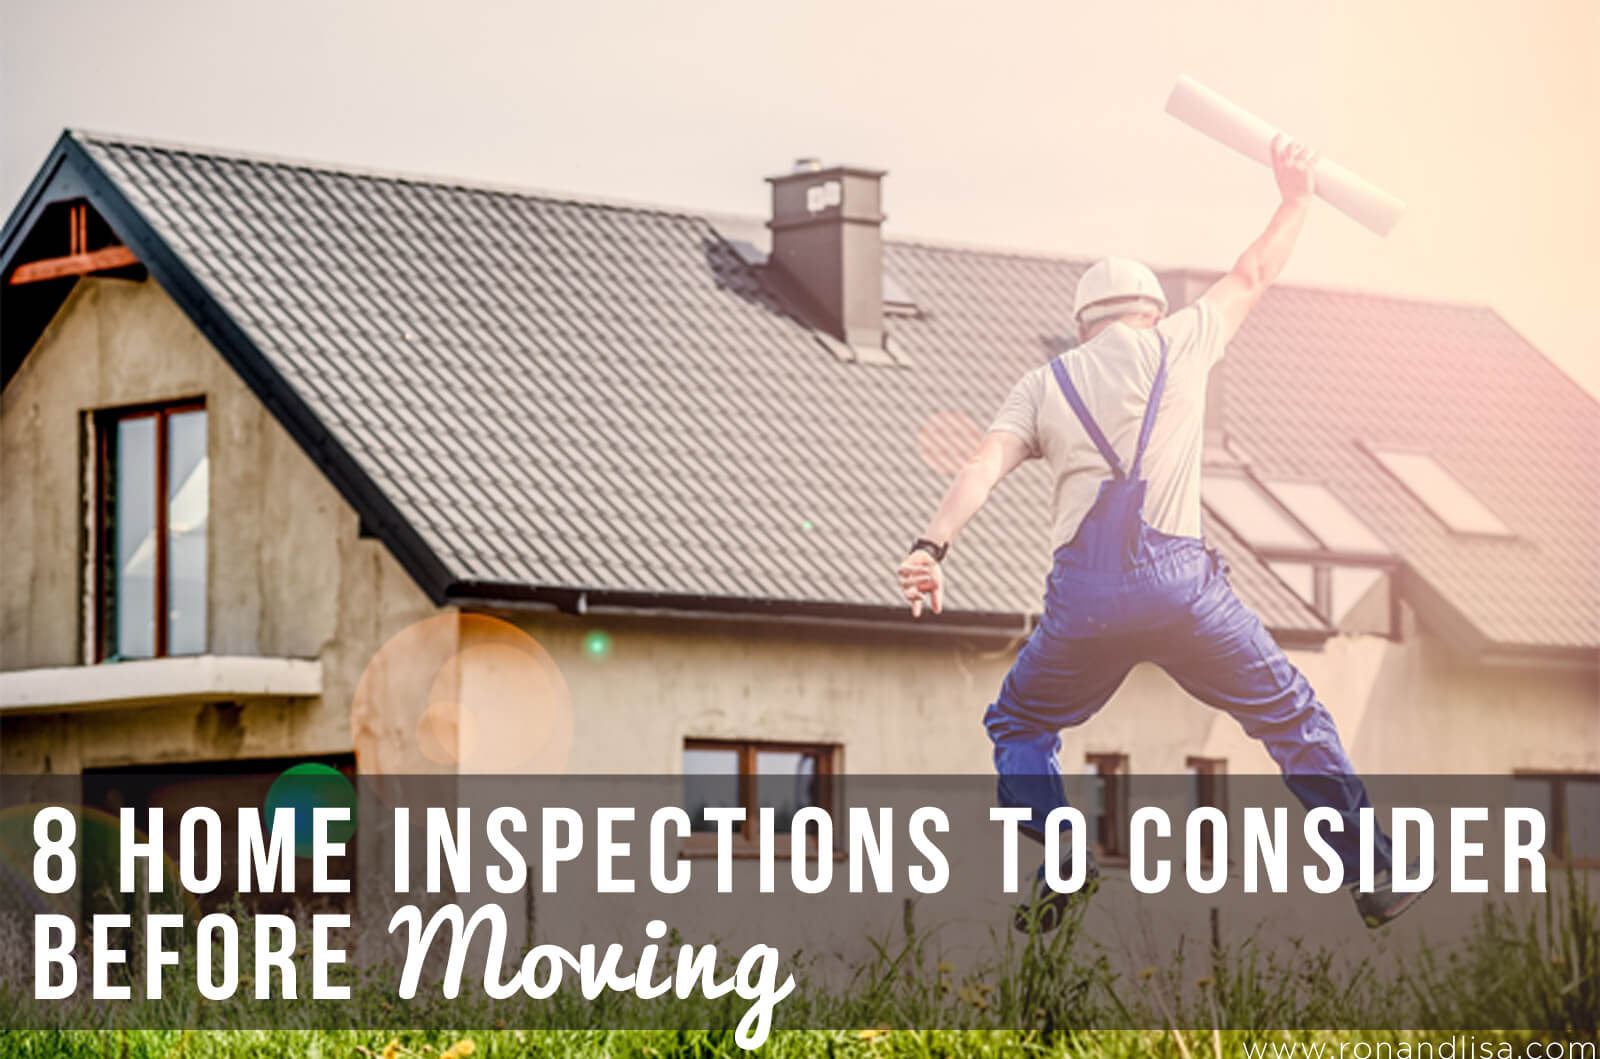 8 Home Inspections to Consider Before Moving